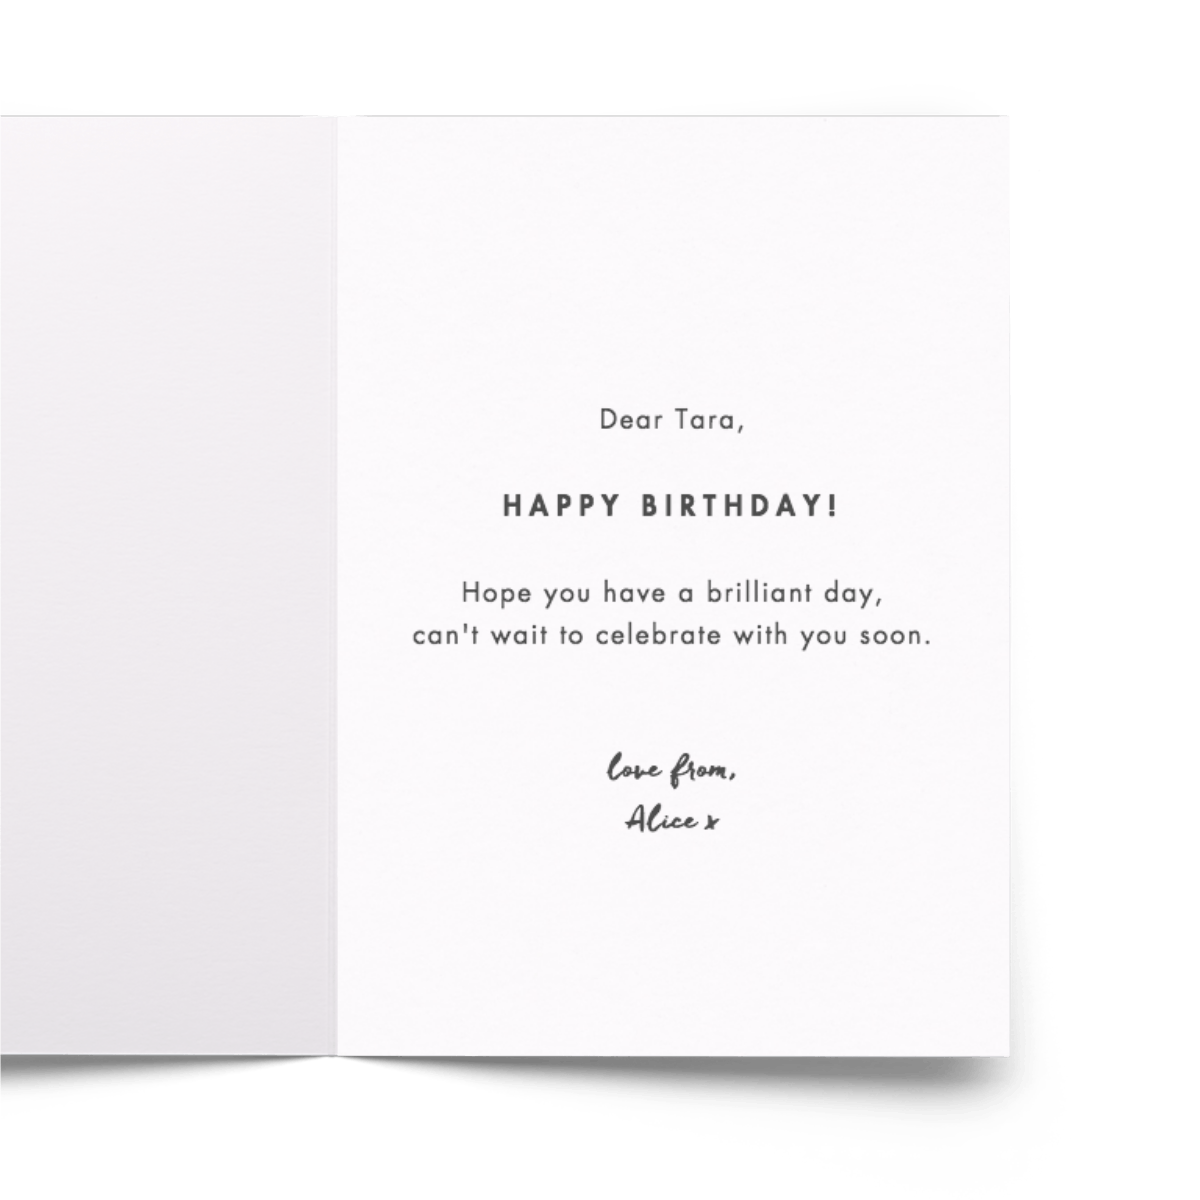 Https%3a%2f%2fwww.papier.com%2fproduct image%2f30611%2f19%2fbirthday babe 7710 inside 1509384208.png?ixlib=rb 1.1